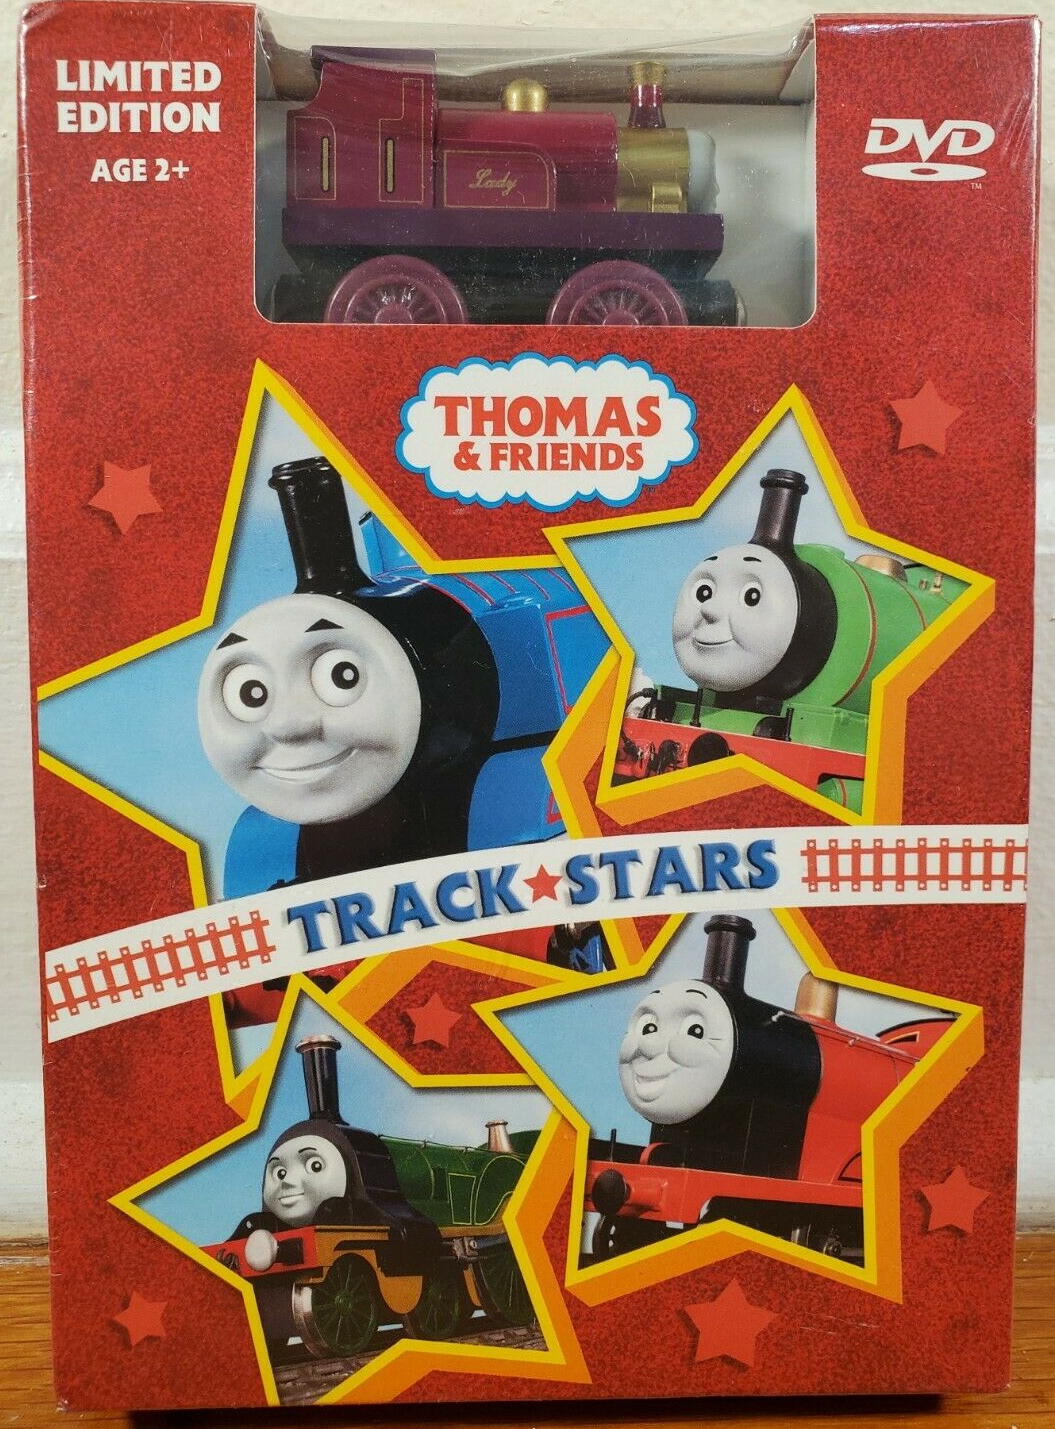 File:TrackStarsDVDwithWoodenLady.png